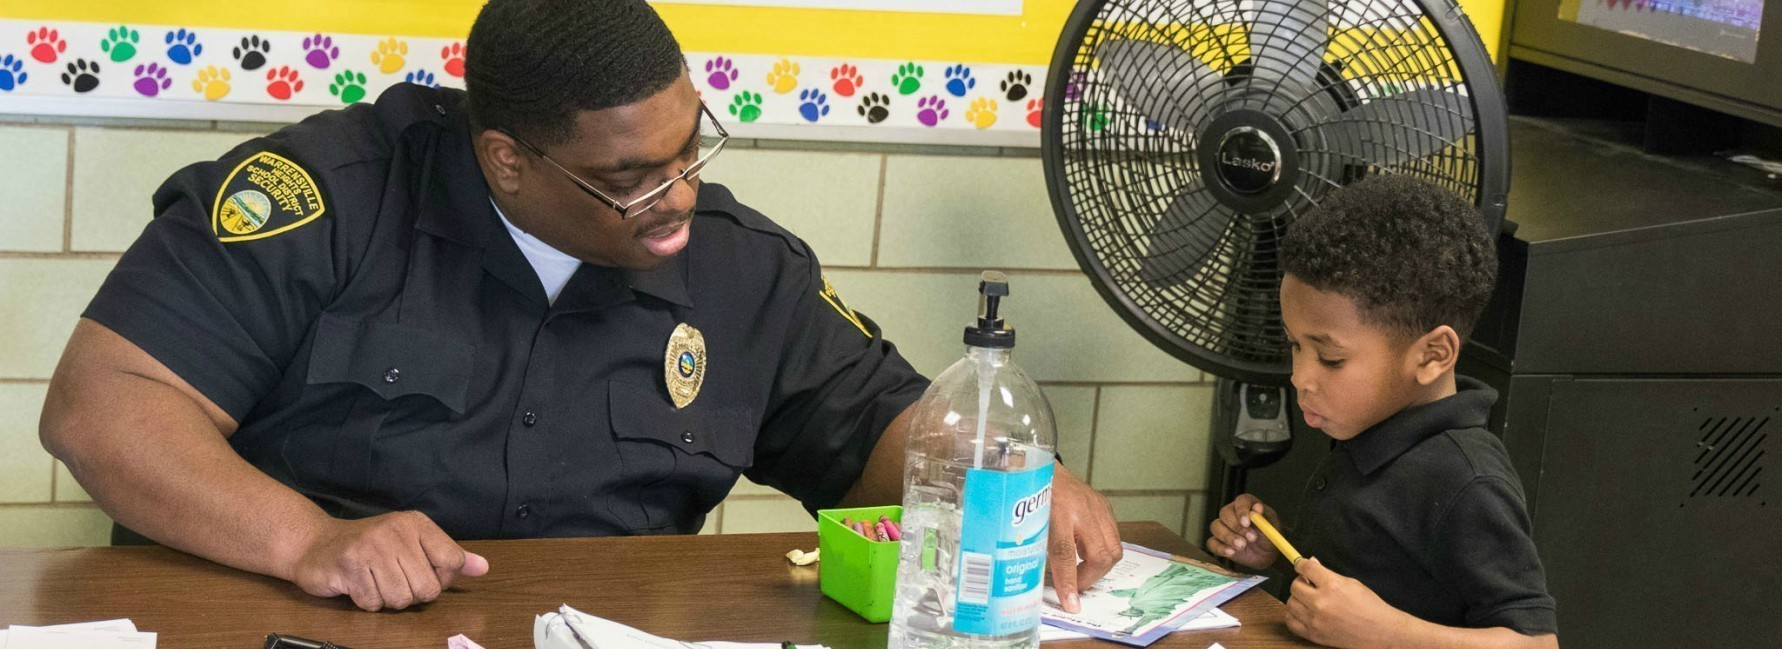 Security guard helping student with assignment